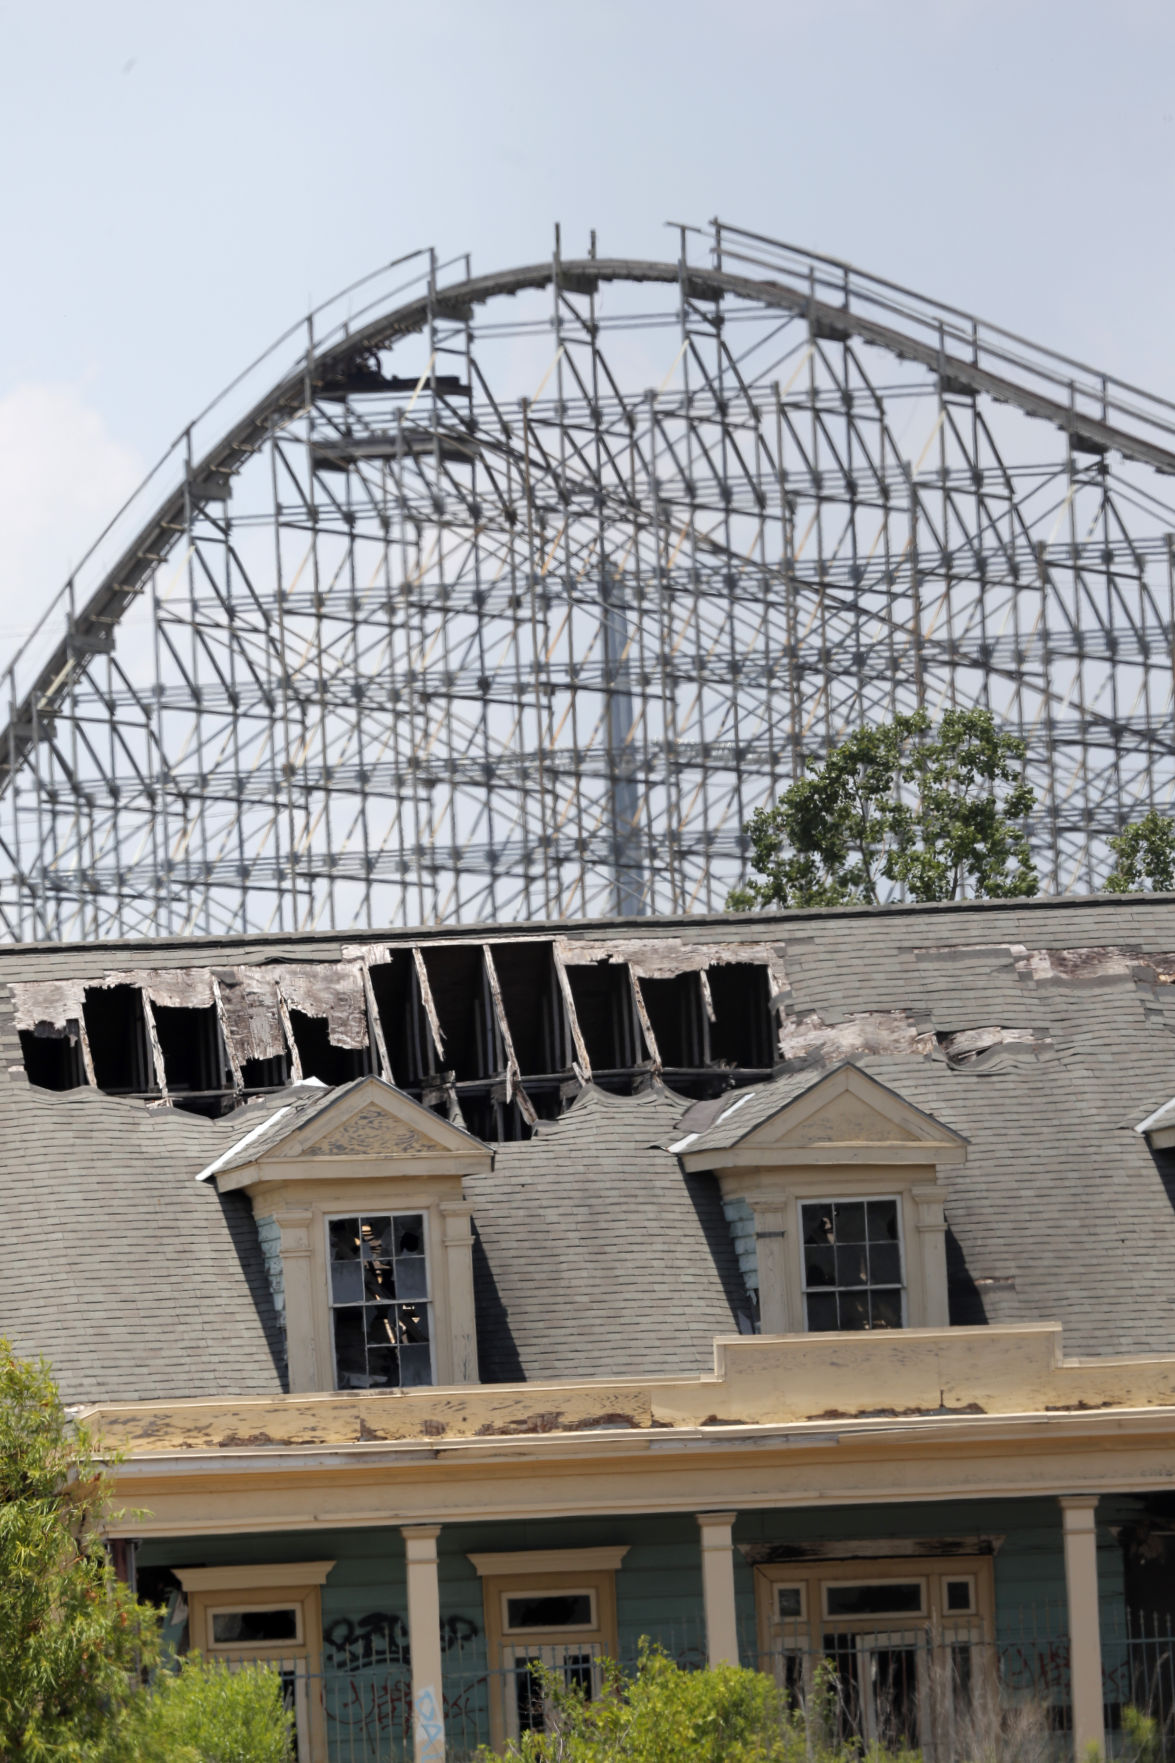 Six Flags New Orleans Leftover Rides Reminders Of Katrina S Damage Might Be Up For Demolition News Nola Com